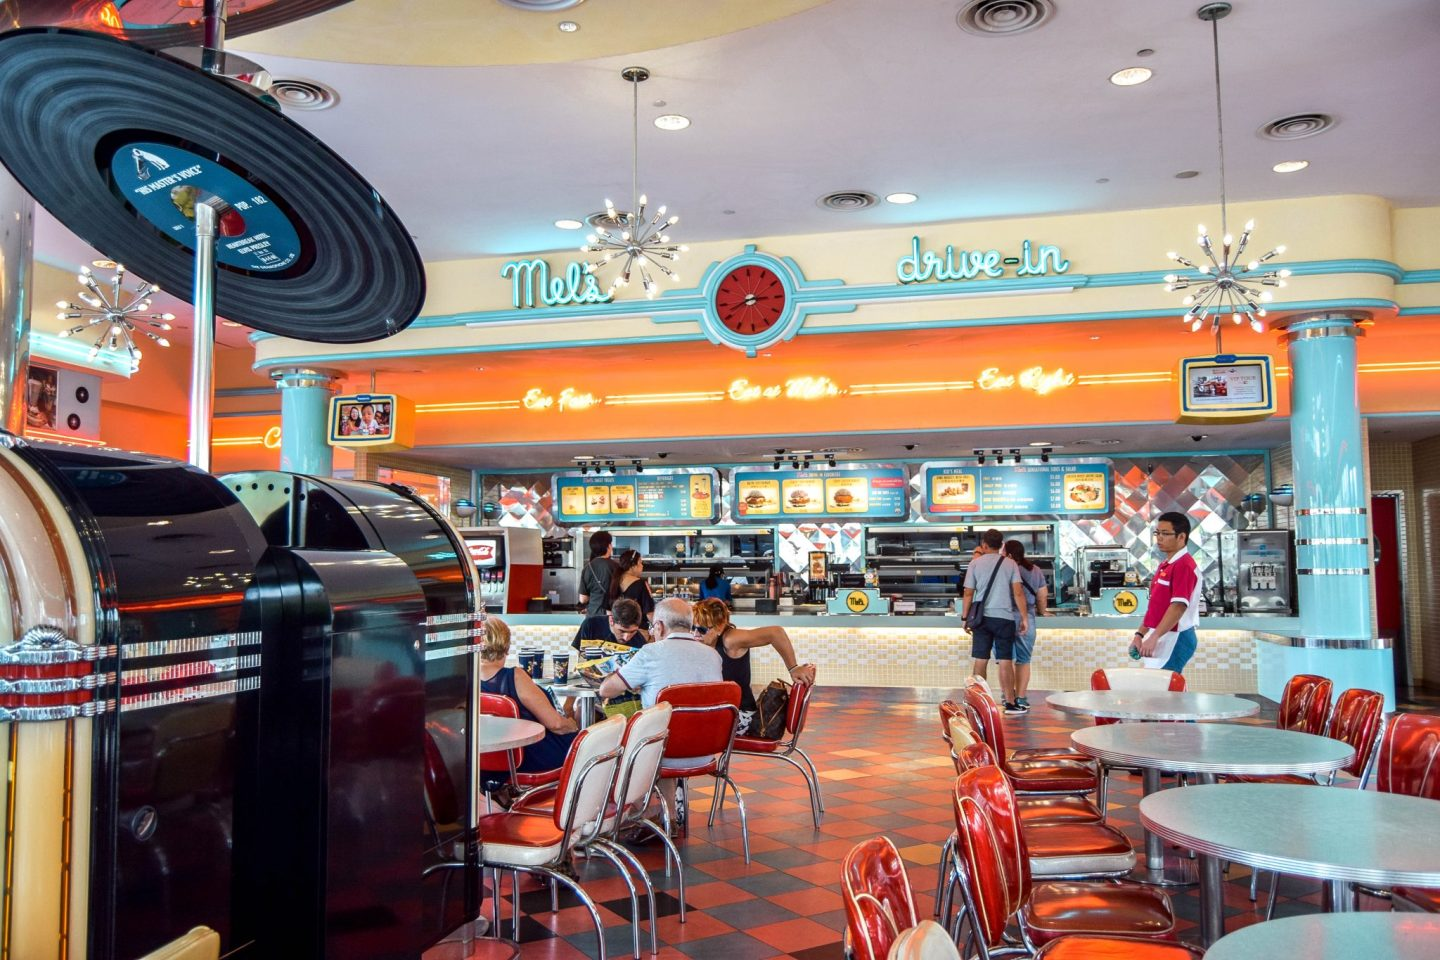 Wanderers & Warriors - Mel's Diner - Universal Studios Singapore - Best Rides & Guide